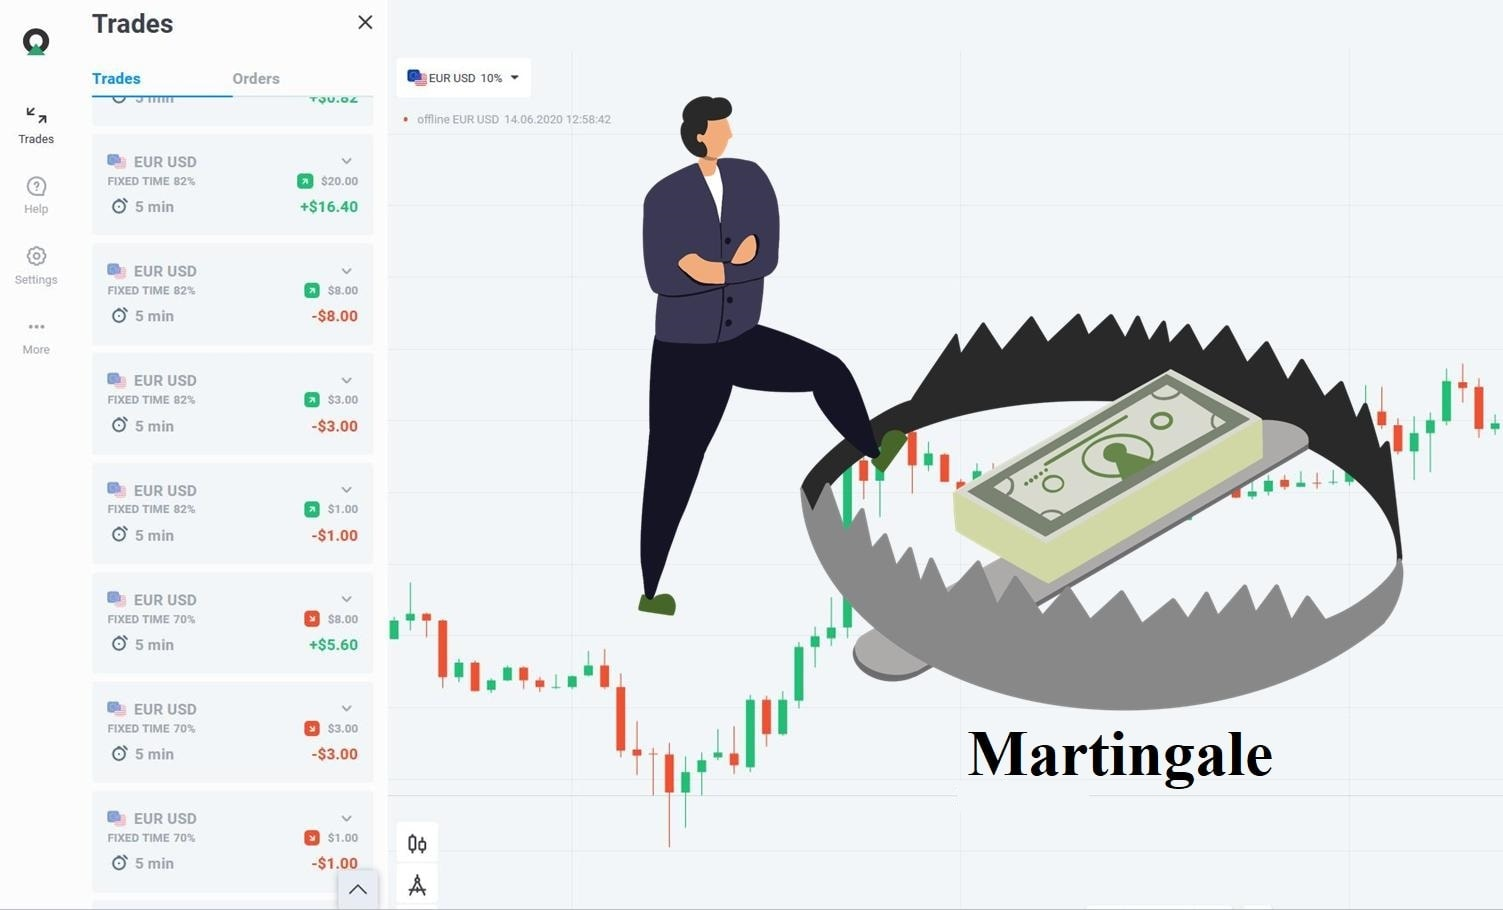 The Martingale trap